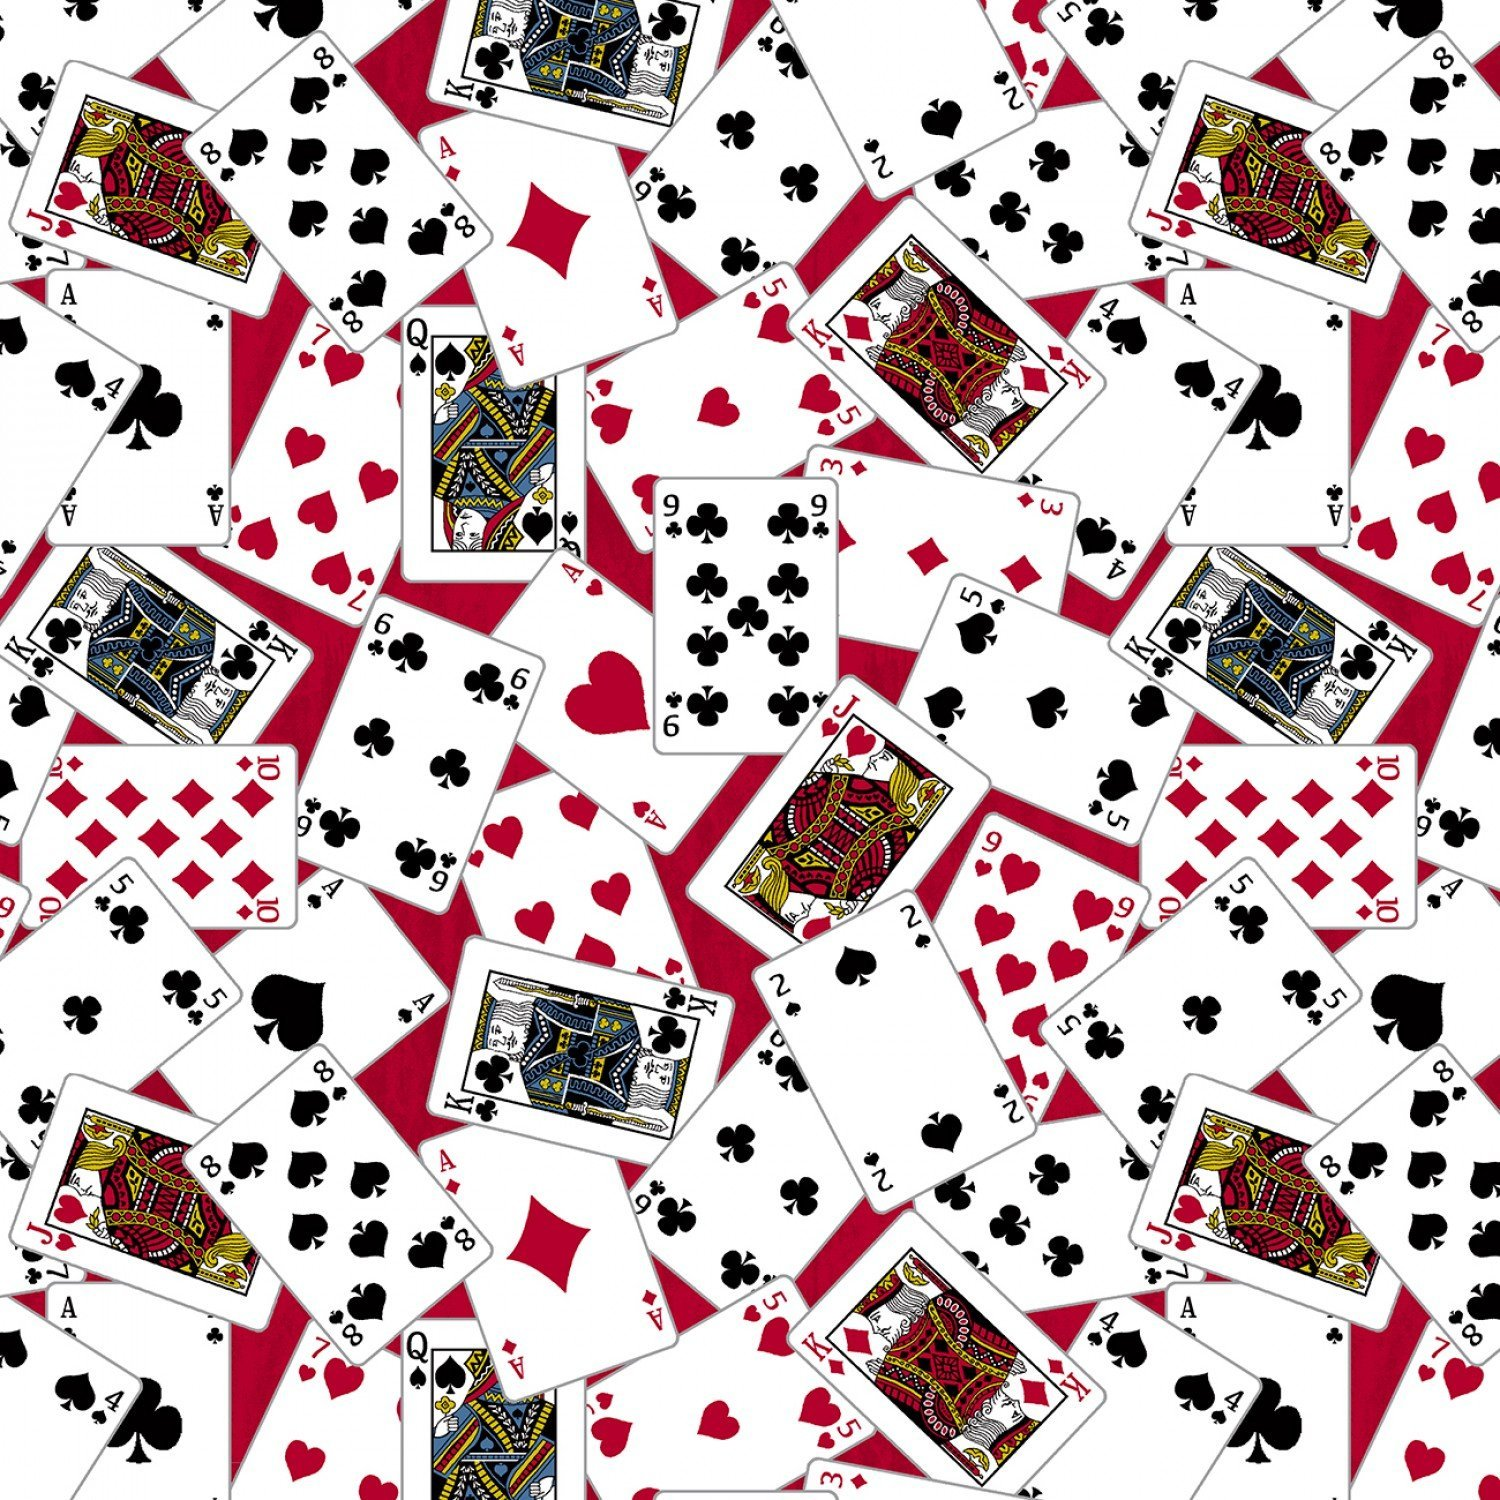 Man Cave 52411-1 Playing Cards Red